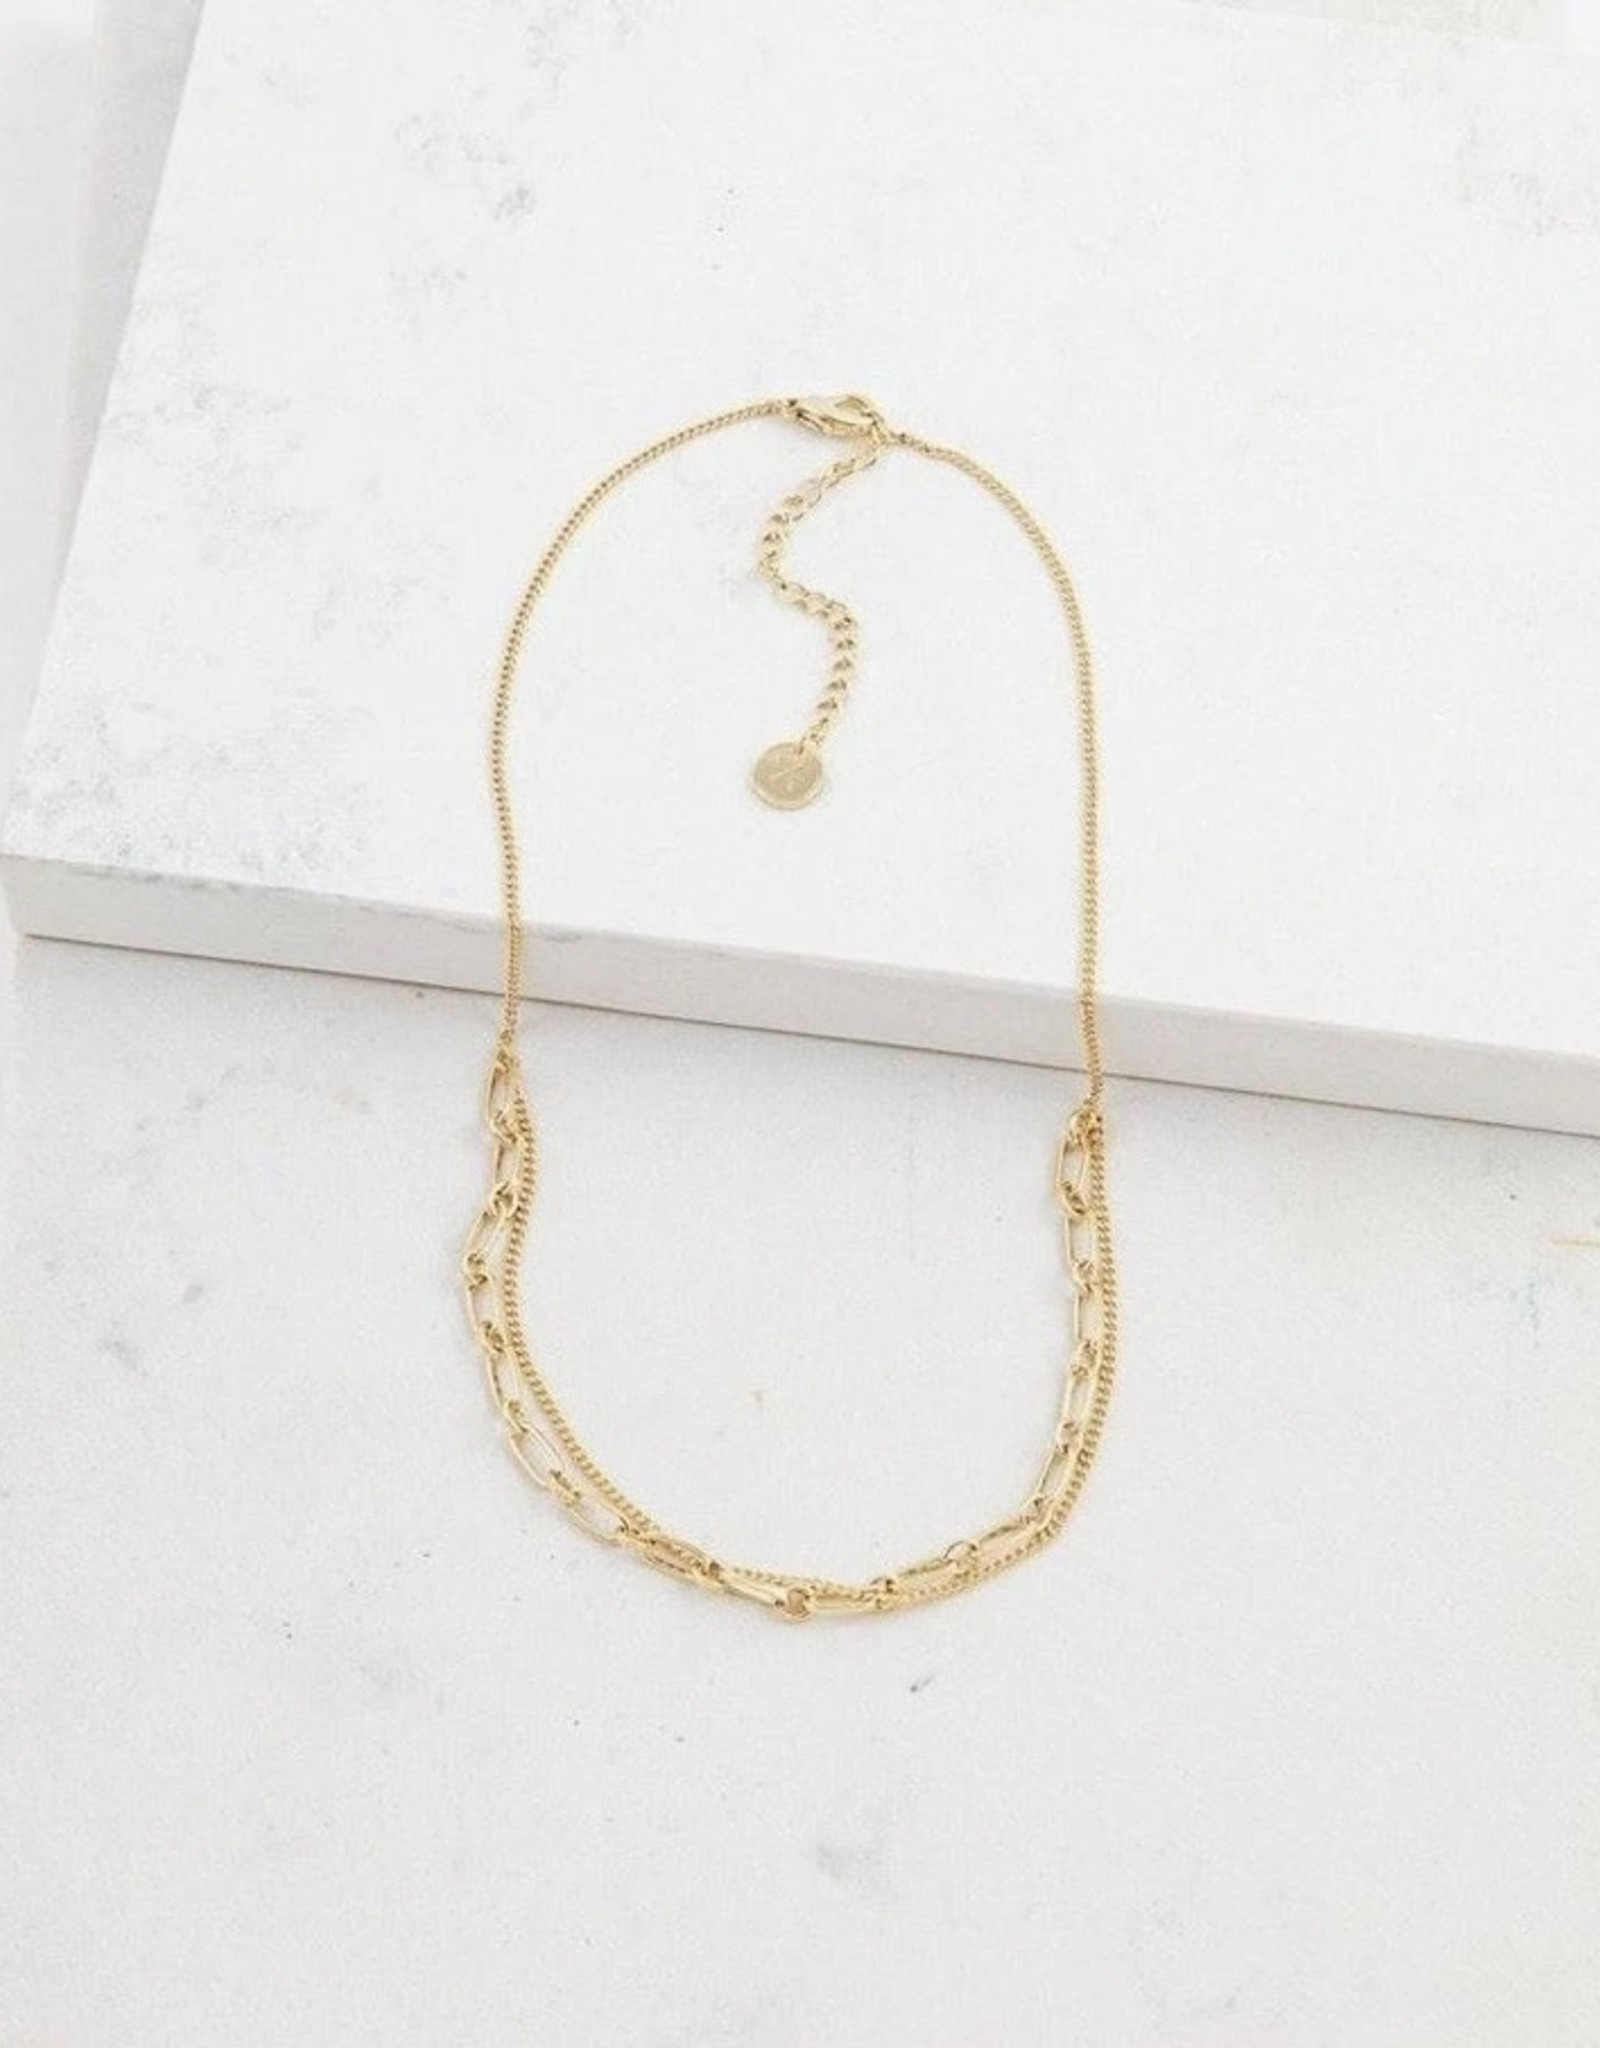 Necklace, Aya, Gold plated brass